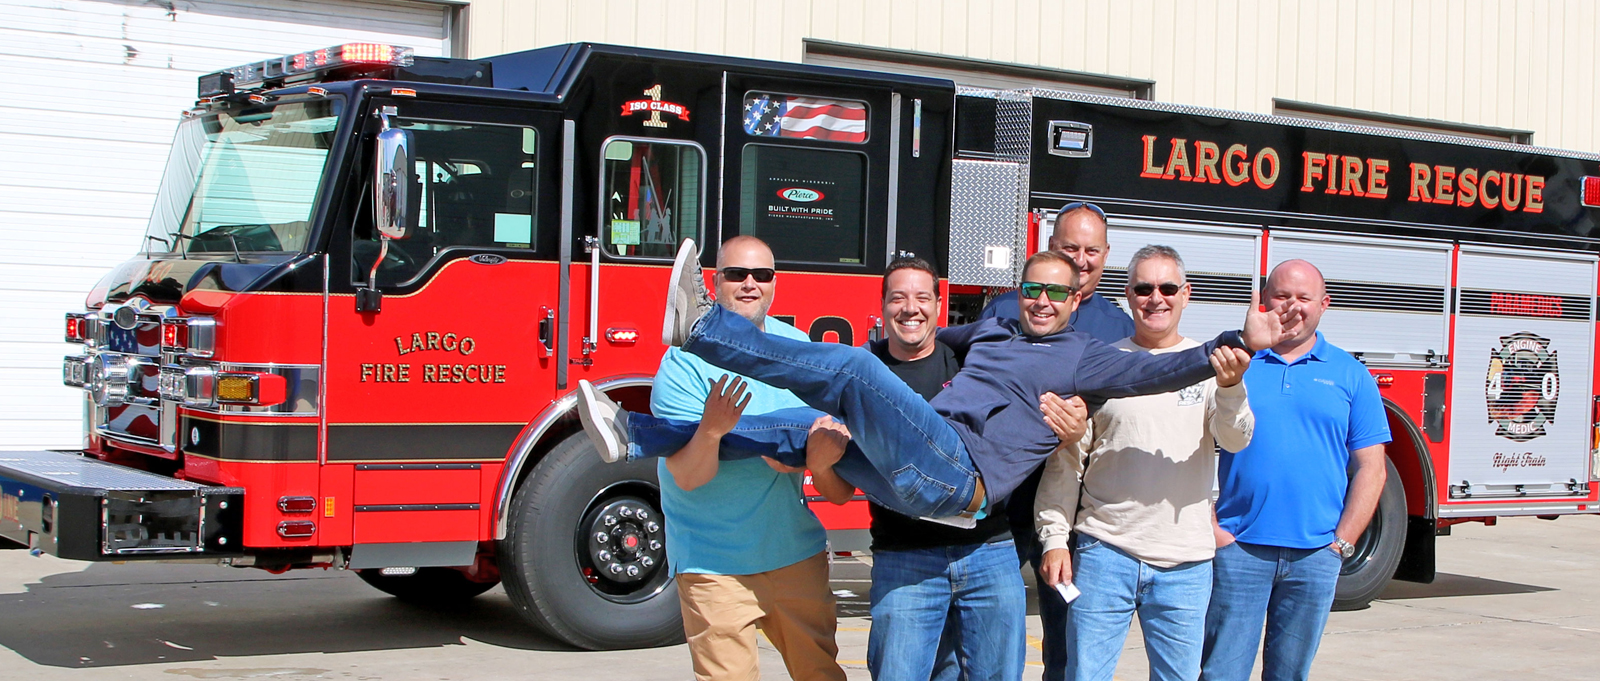 A group of fire fighters joke around with one throw in the air in front of their new fire truck at Pierce's facility.